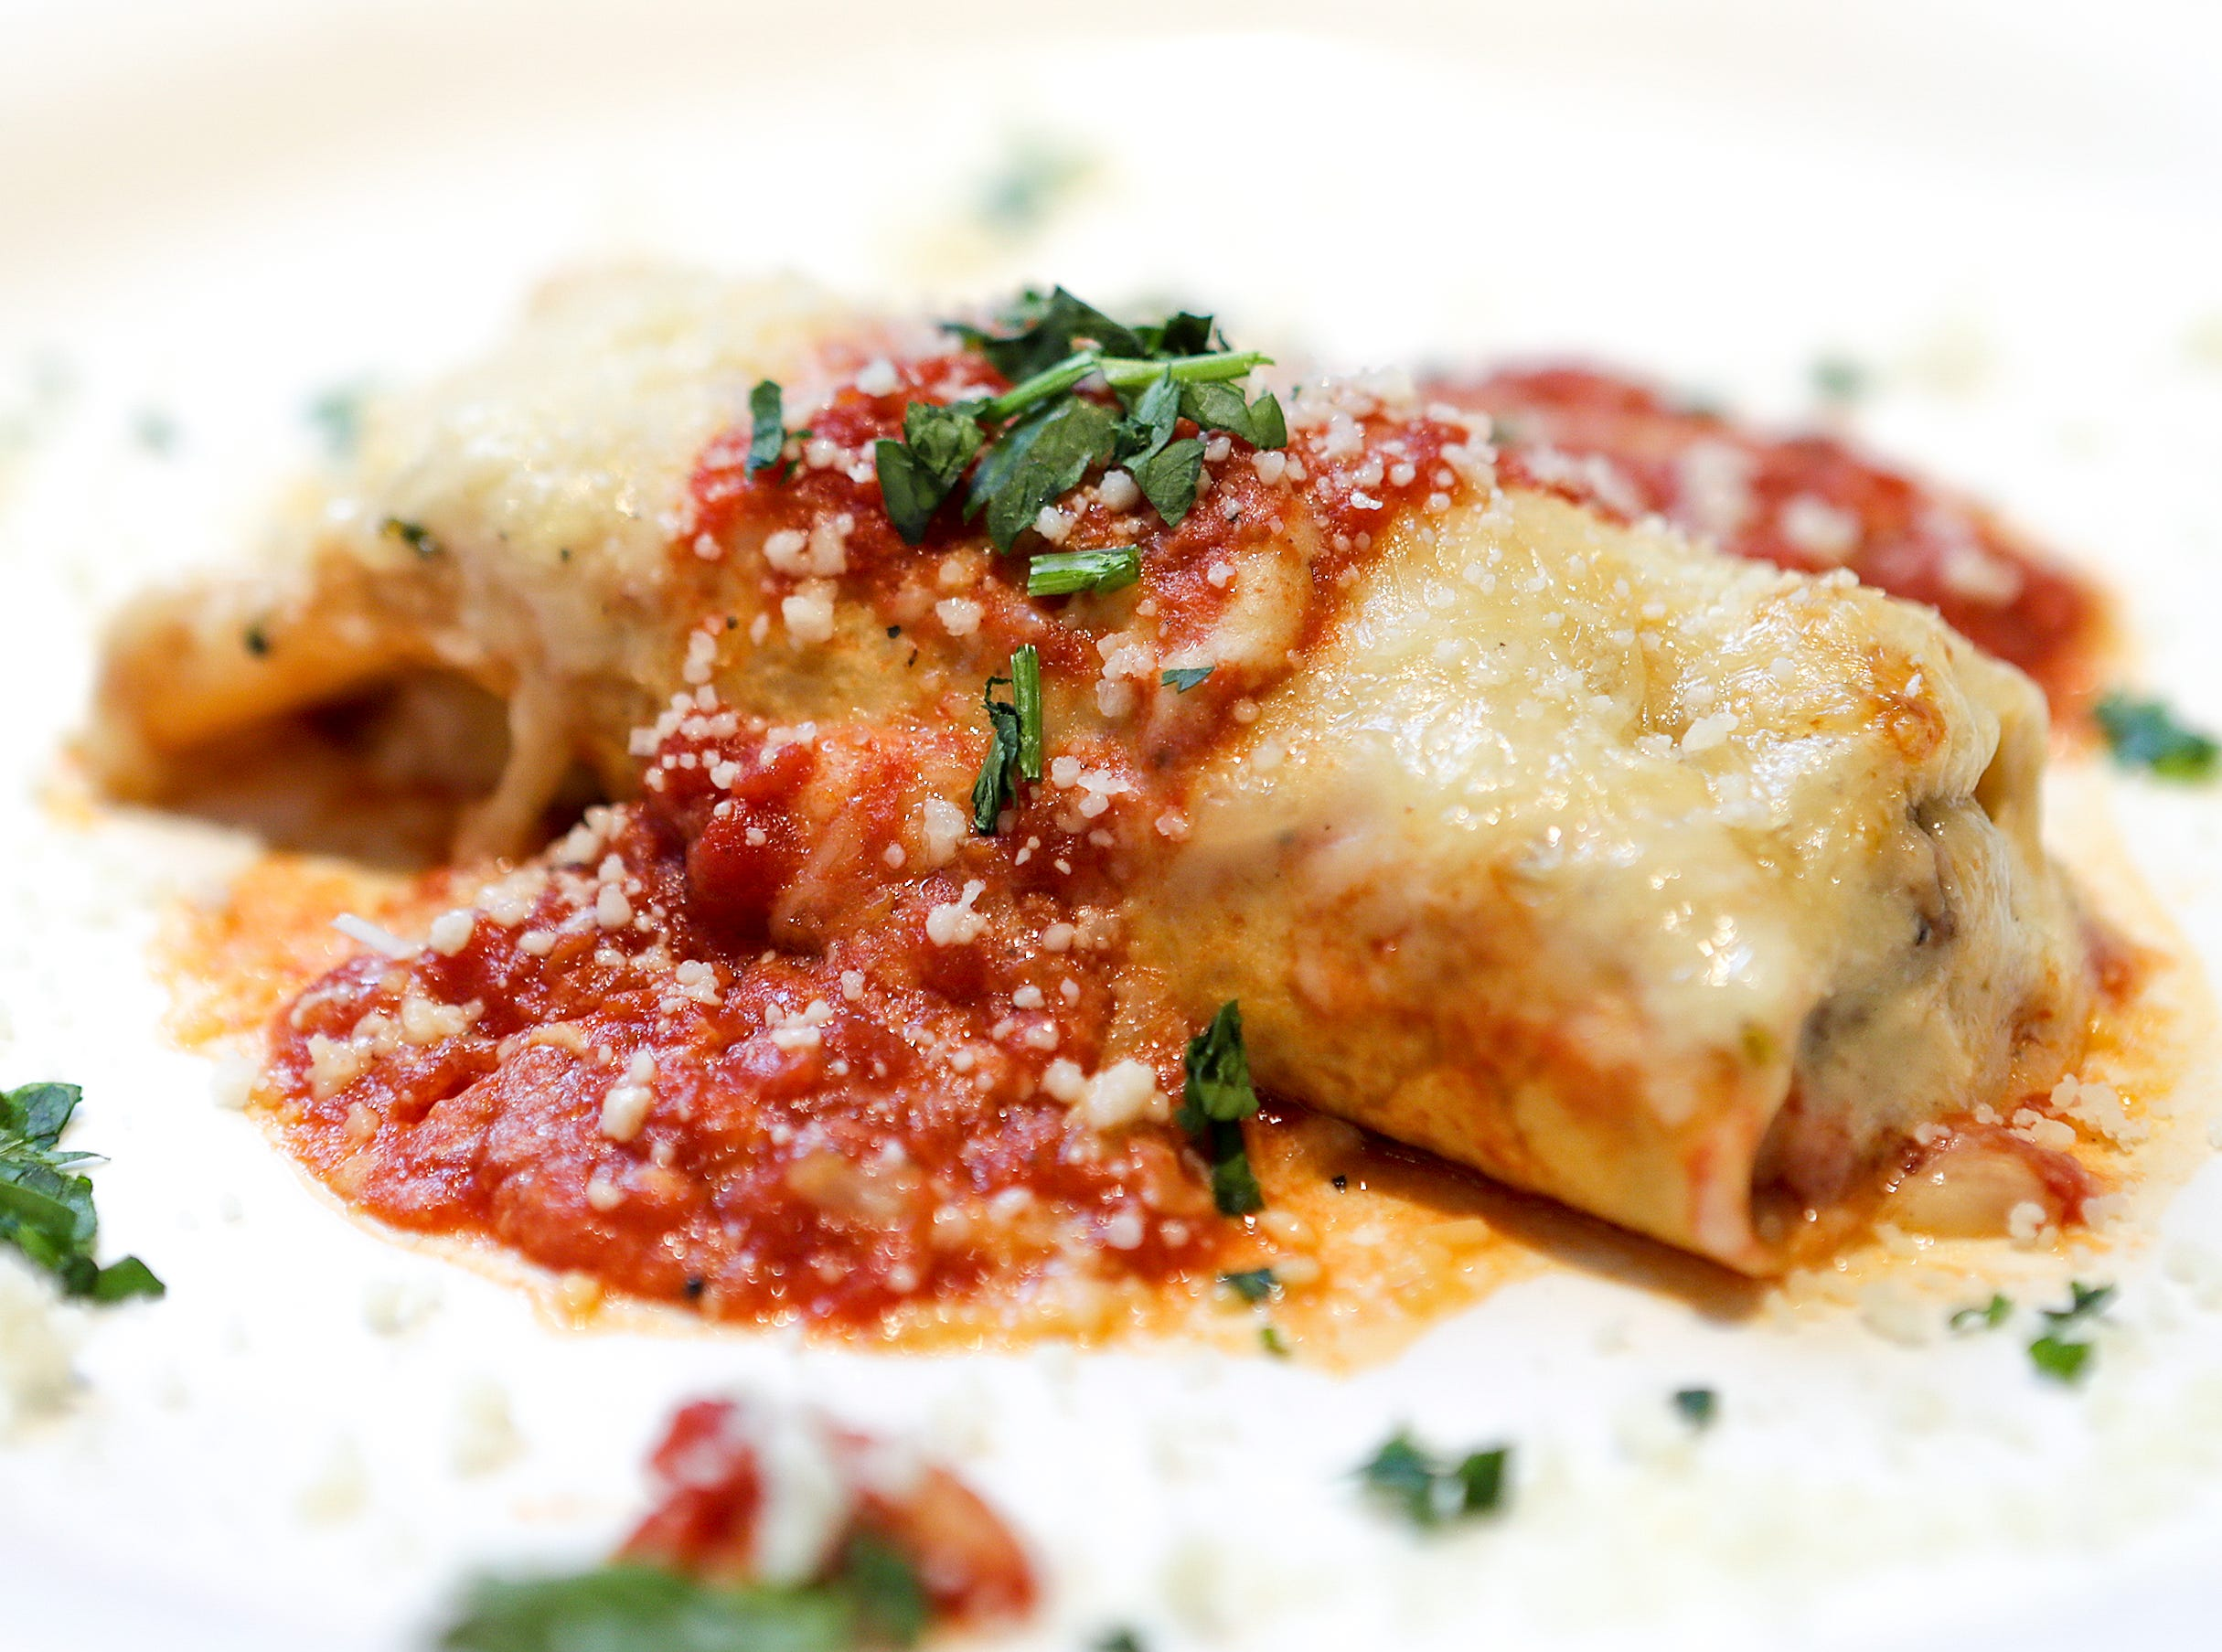 Crepe Agostino at Vincenzo'sDelicate crepe wrapped around a blend of beef and veal baked in a béchamel glazed marinara sauce.December 19, 2018